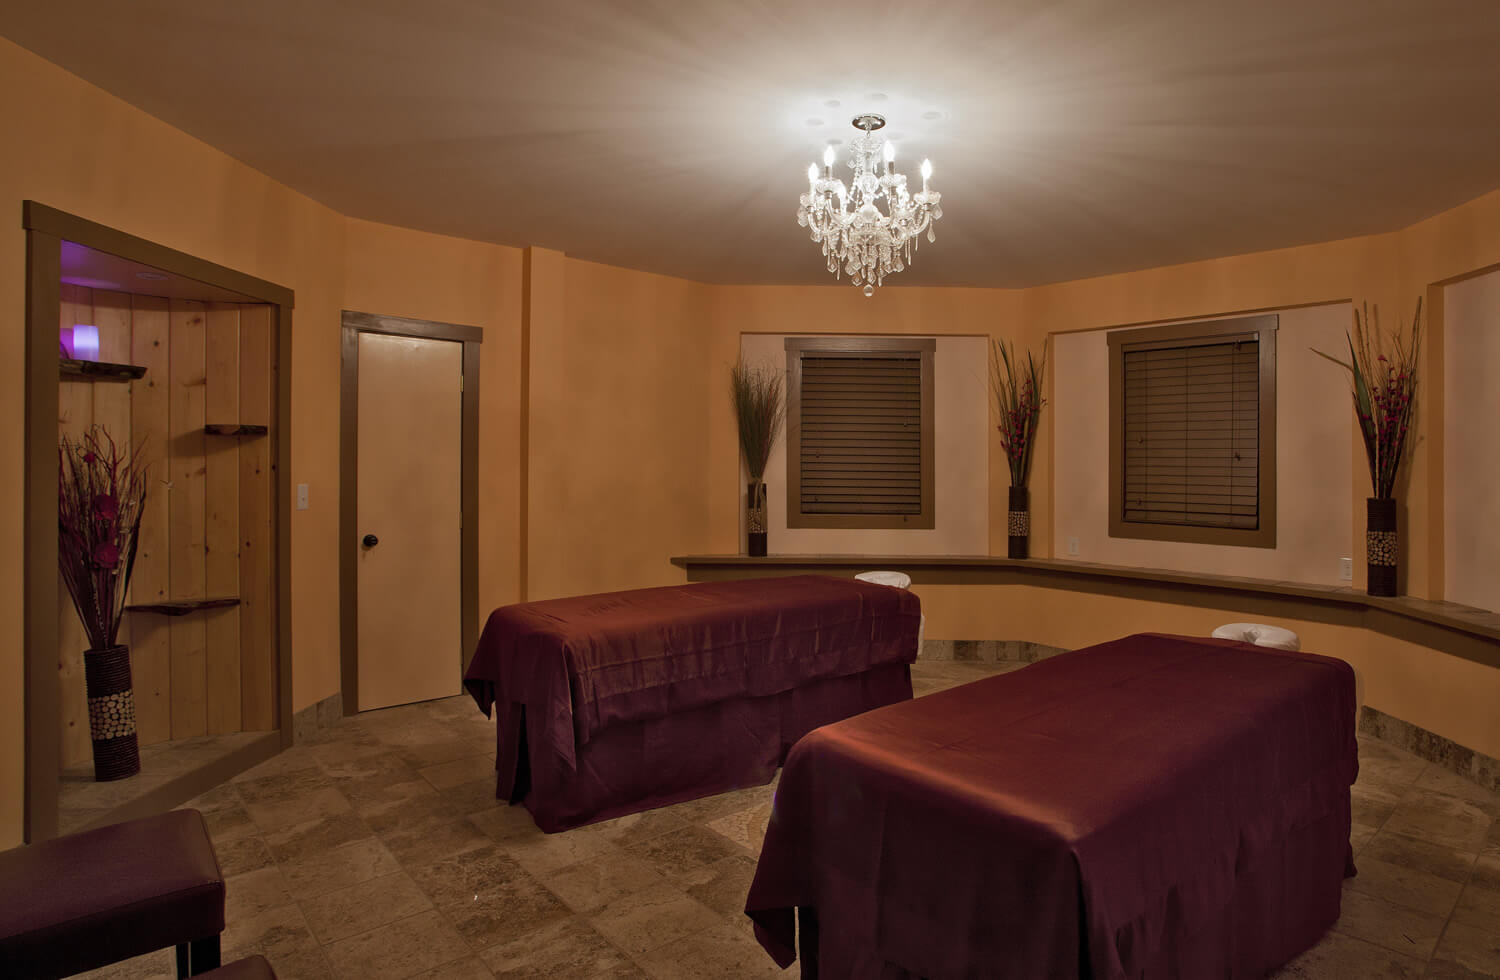 octagonal room with large windows and chandelier. Two massage tables with burgundy satin sheets in the middle of the room.